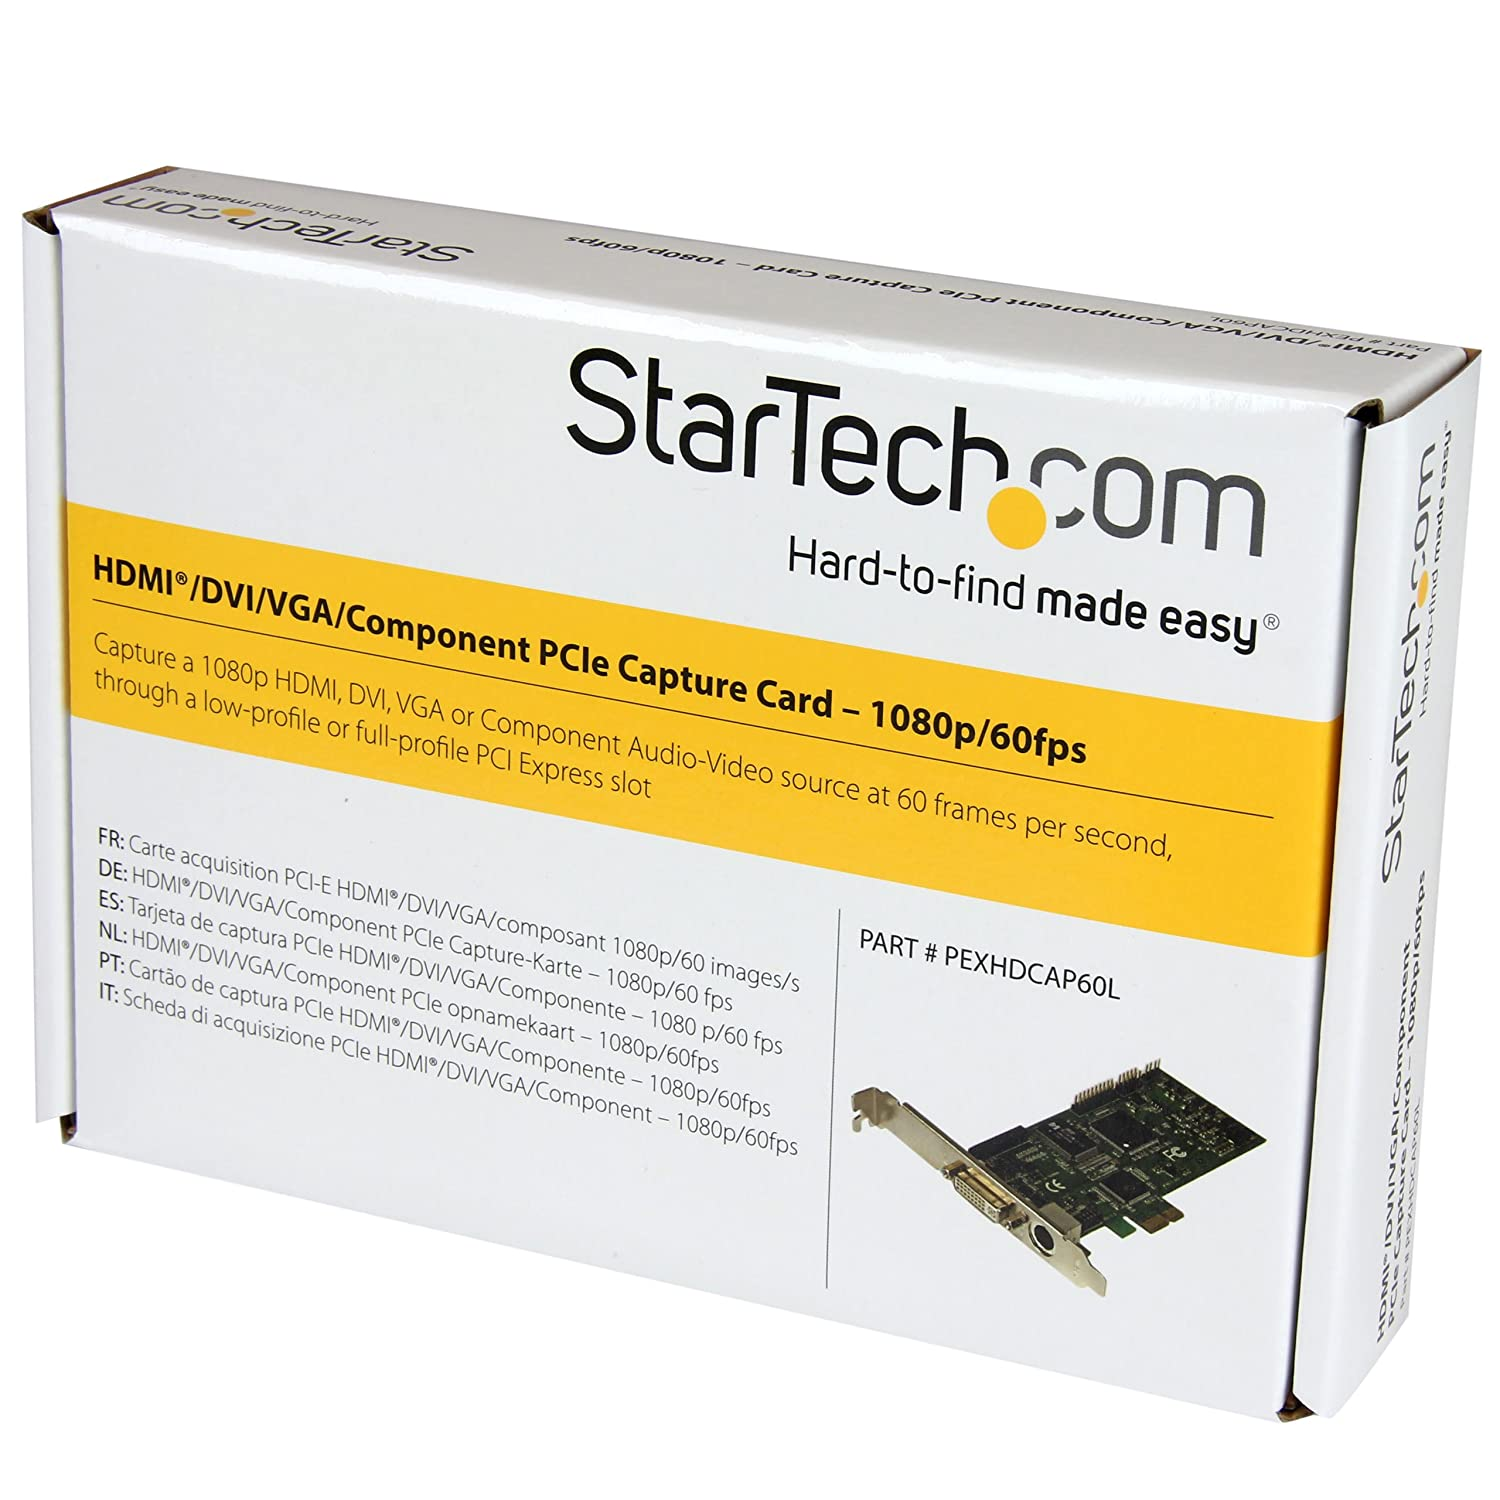 StarTech.com PCIe Video Capture Card – HDMI / DVID / VGA / Component – 60fps Game Capture Card – 1080p – HDMI Video Capture Card